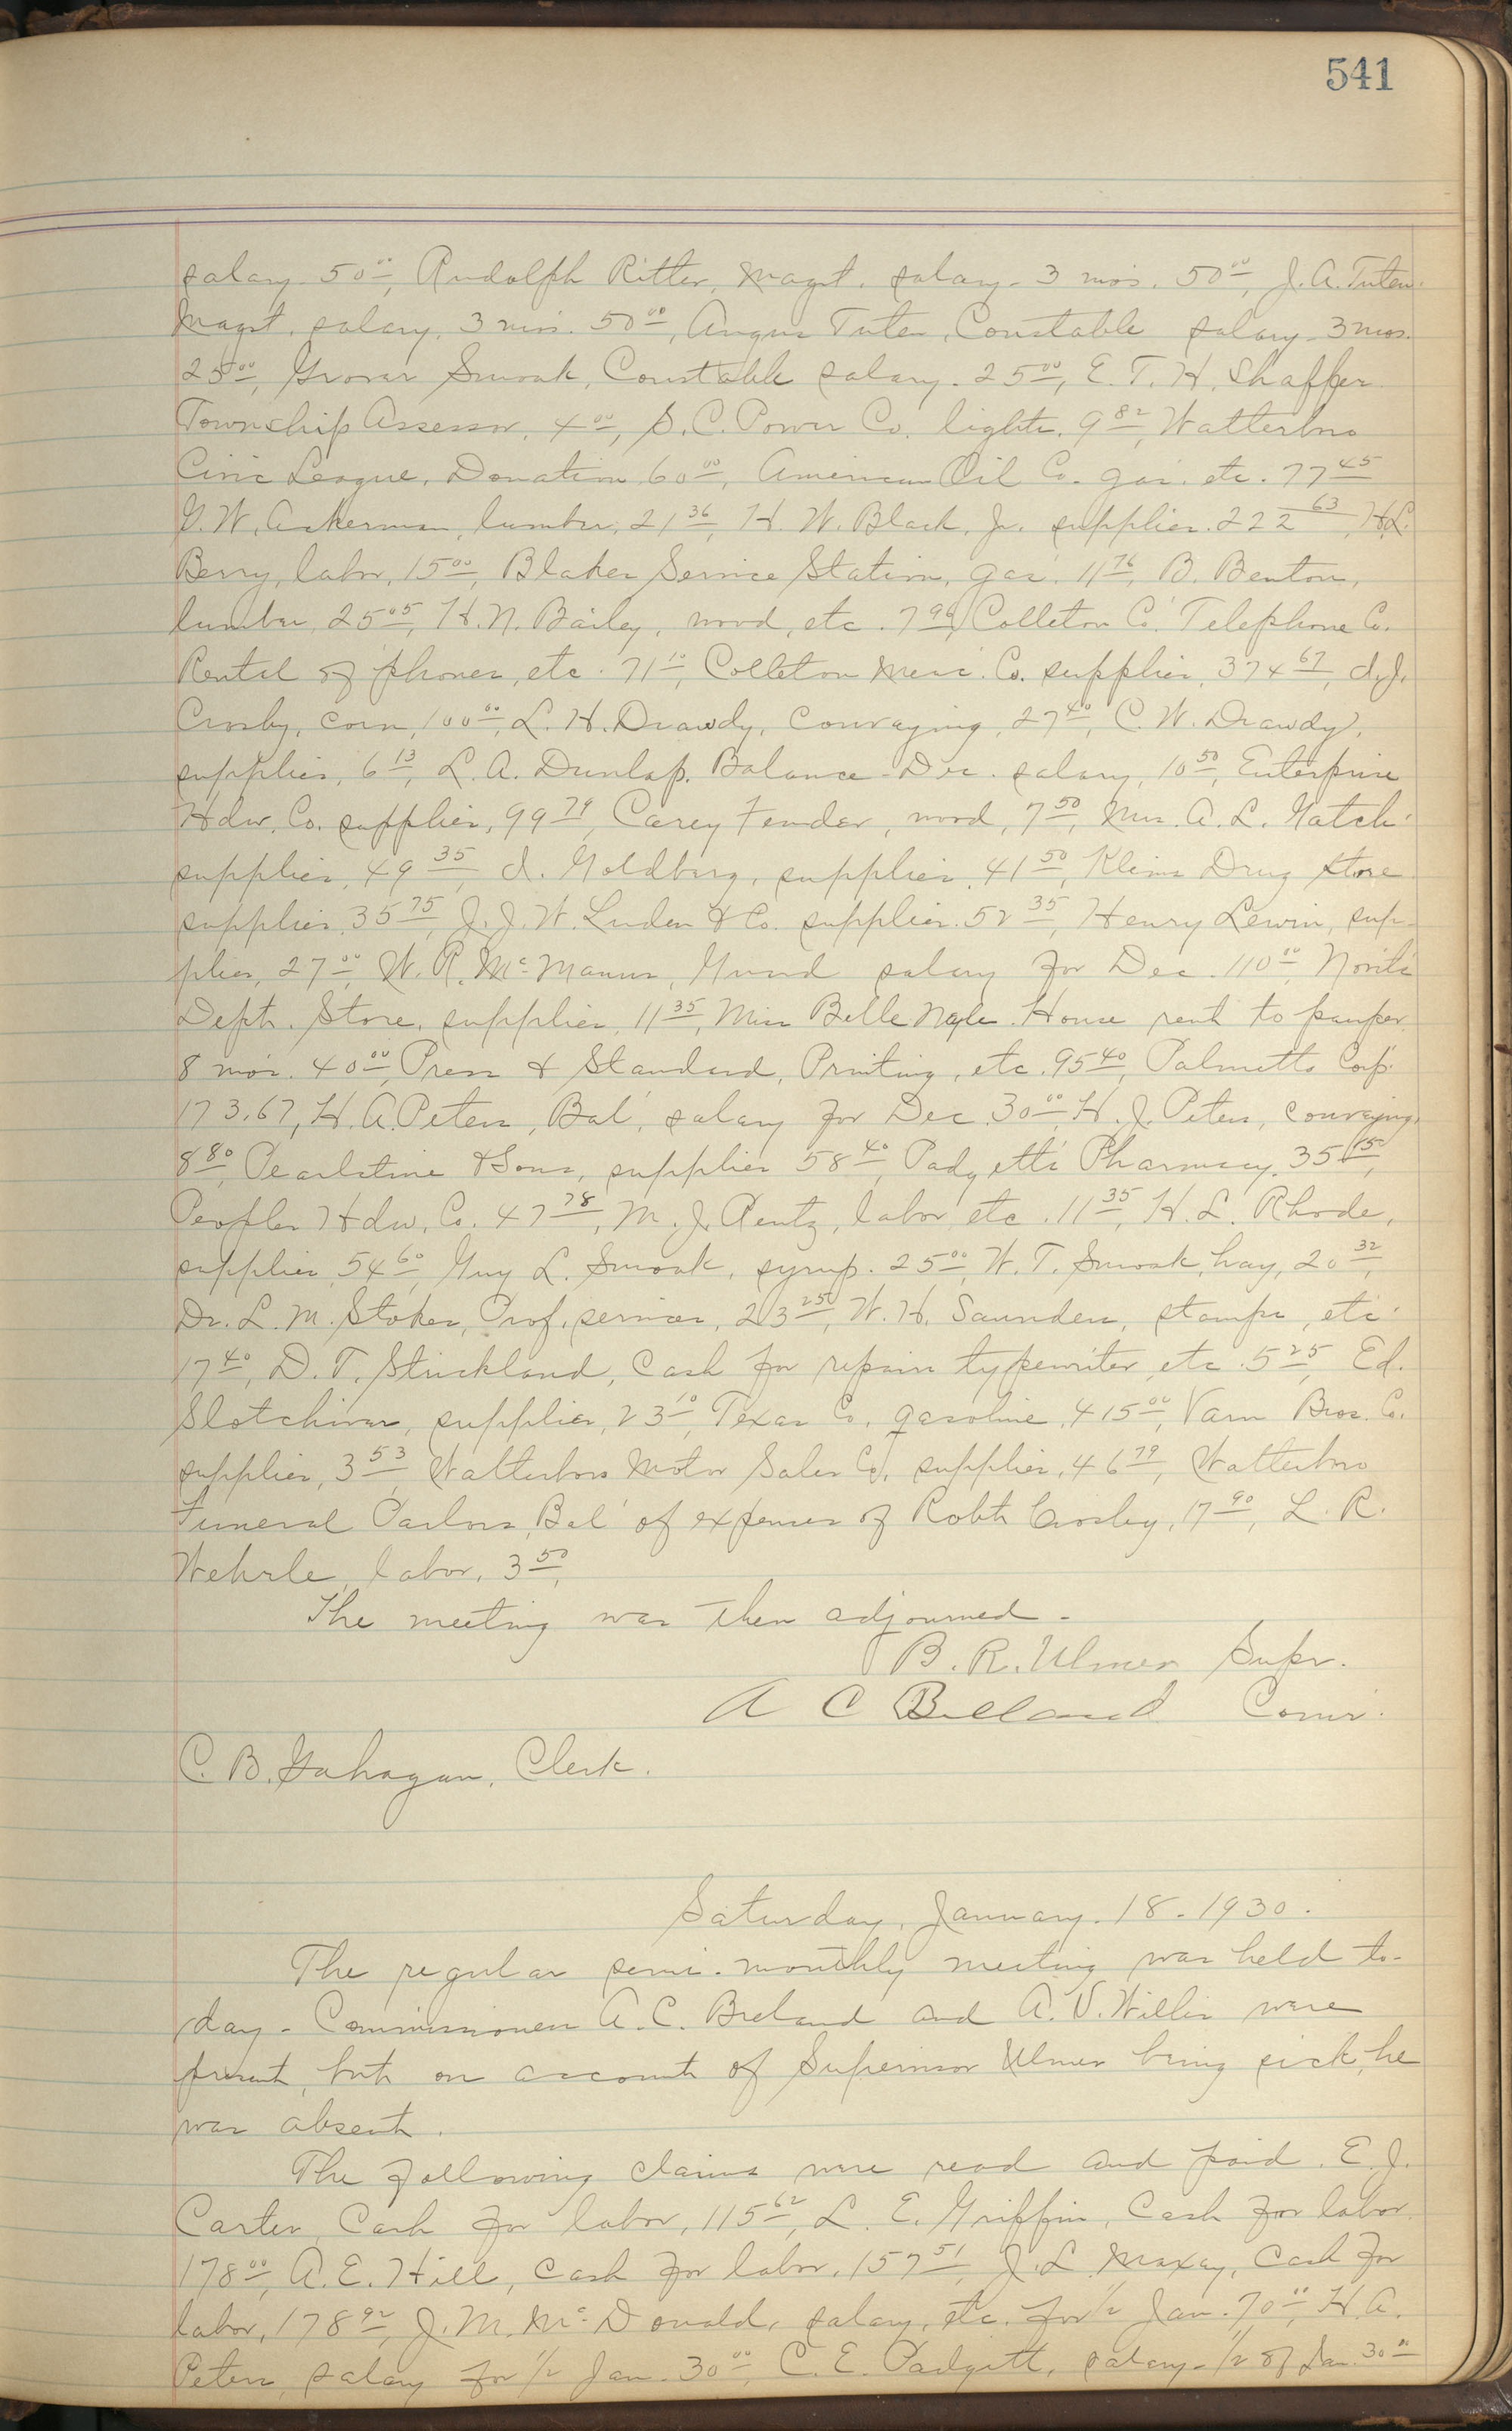 Colleton County Highway Commission Ledger, Page 541